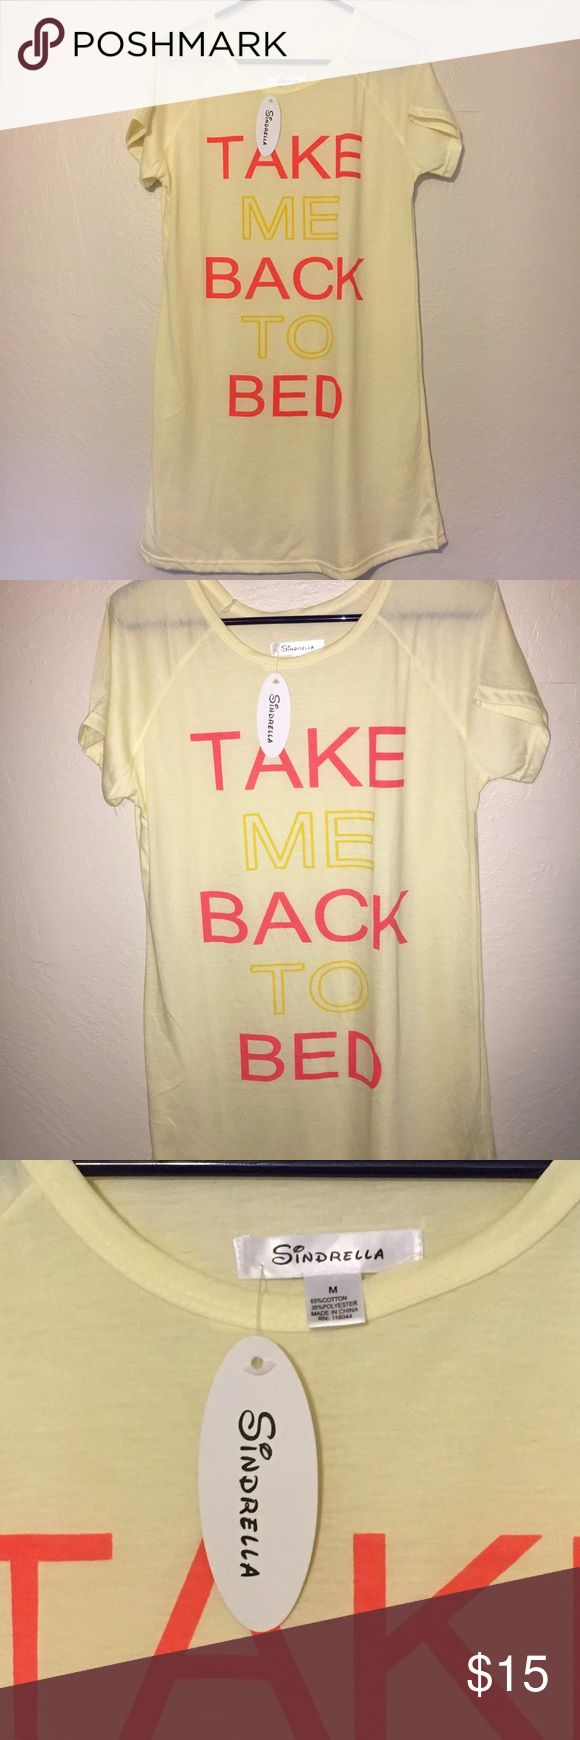 Listing Sindrella Take Me Back To Bed Nightgown This Take Me Back To Bed Nightgown is new with tags and is size Medium. Very thin and lightweight. Super cute nightie! Would make a cute Valentine's Day gift!  Sindrella Intimates & Sleepwear Pajamas